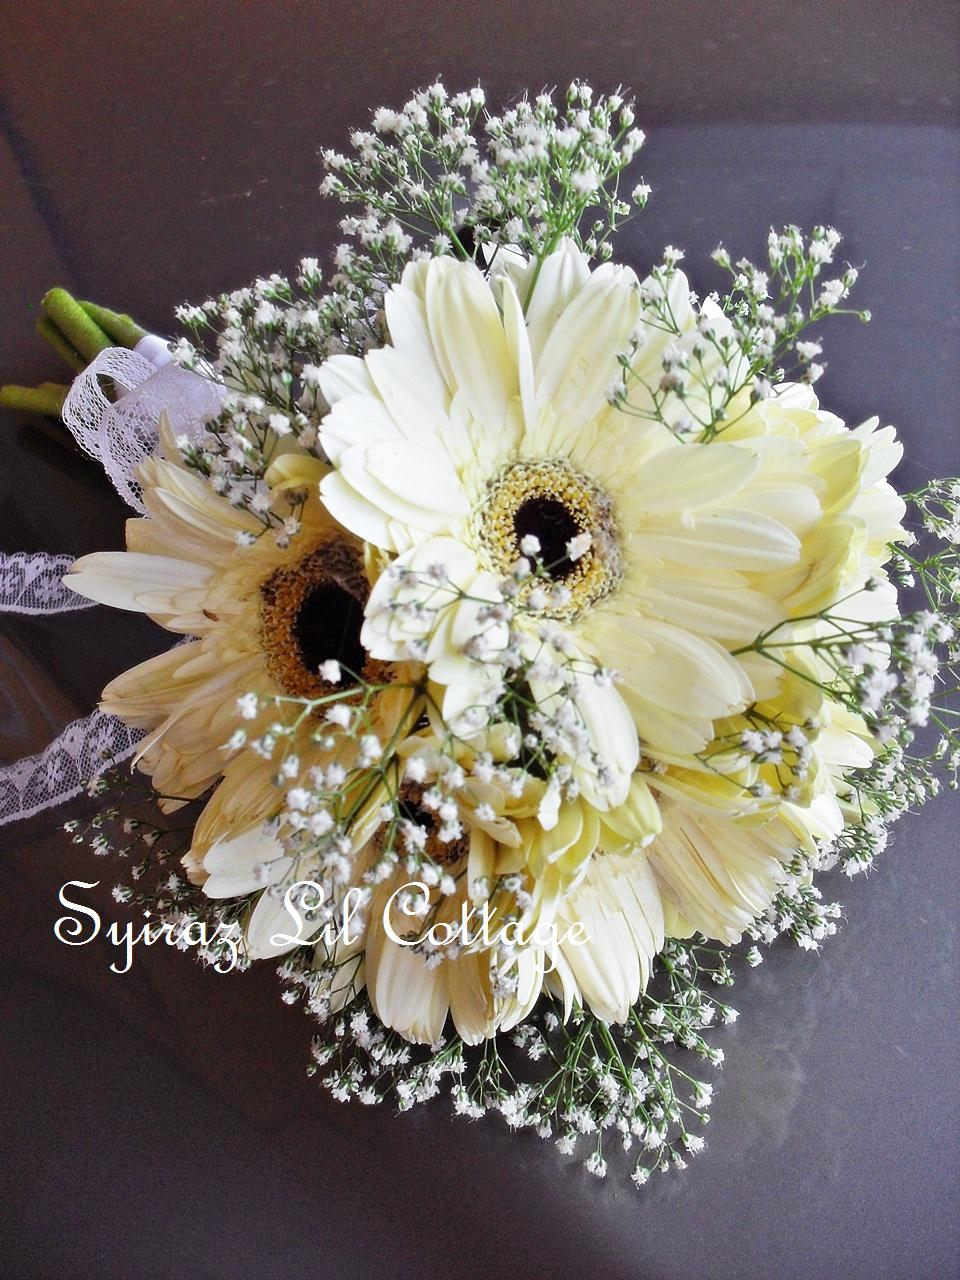 Bridal Bouquet Of Gerbera Daisies : Weddings at syiraz lil cottage another gerbera bridal